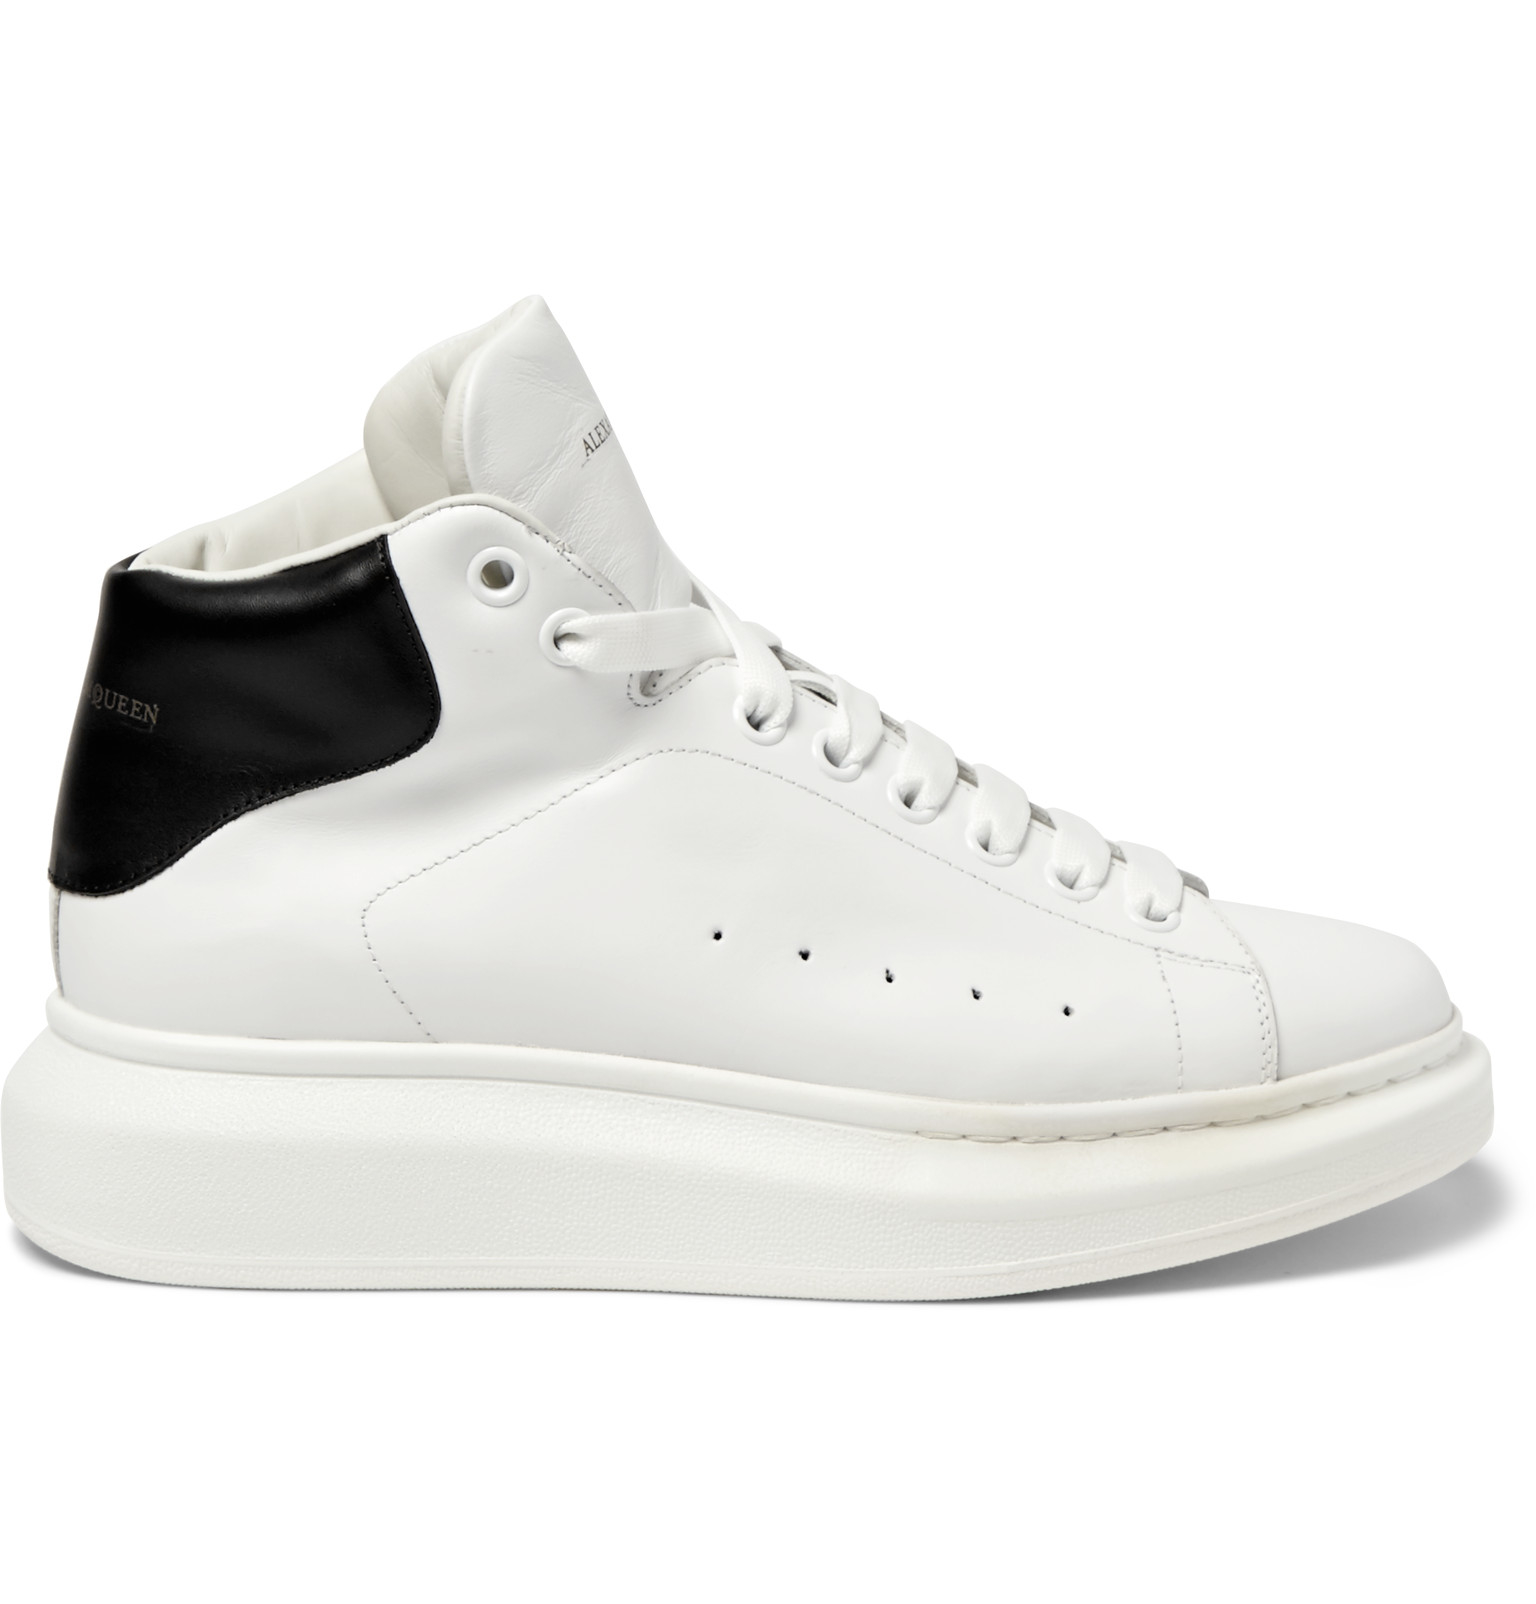 new product d5ccd 4324d low cost adidas stan smith high sole 5d2c1 57dcc